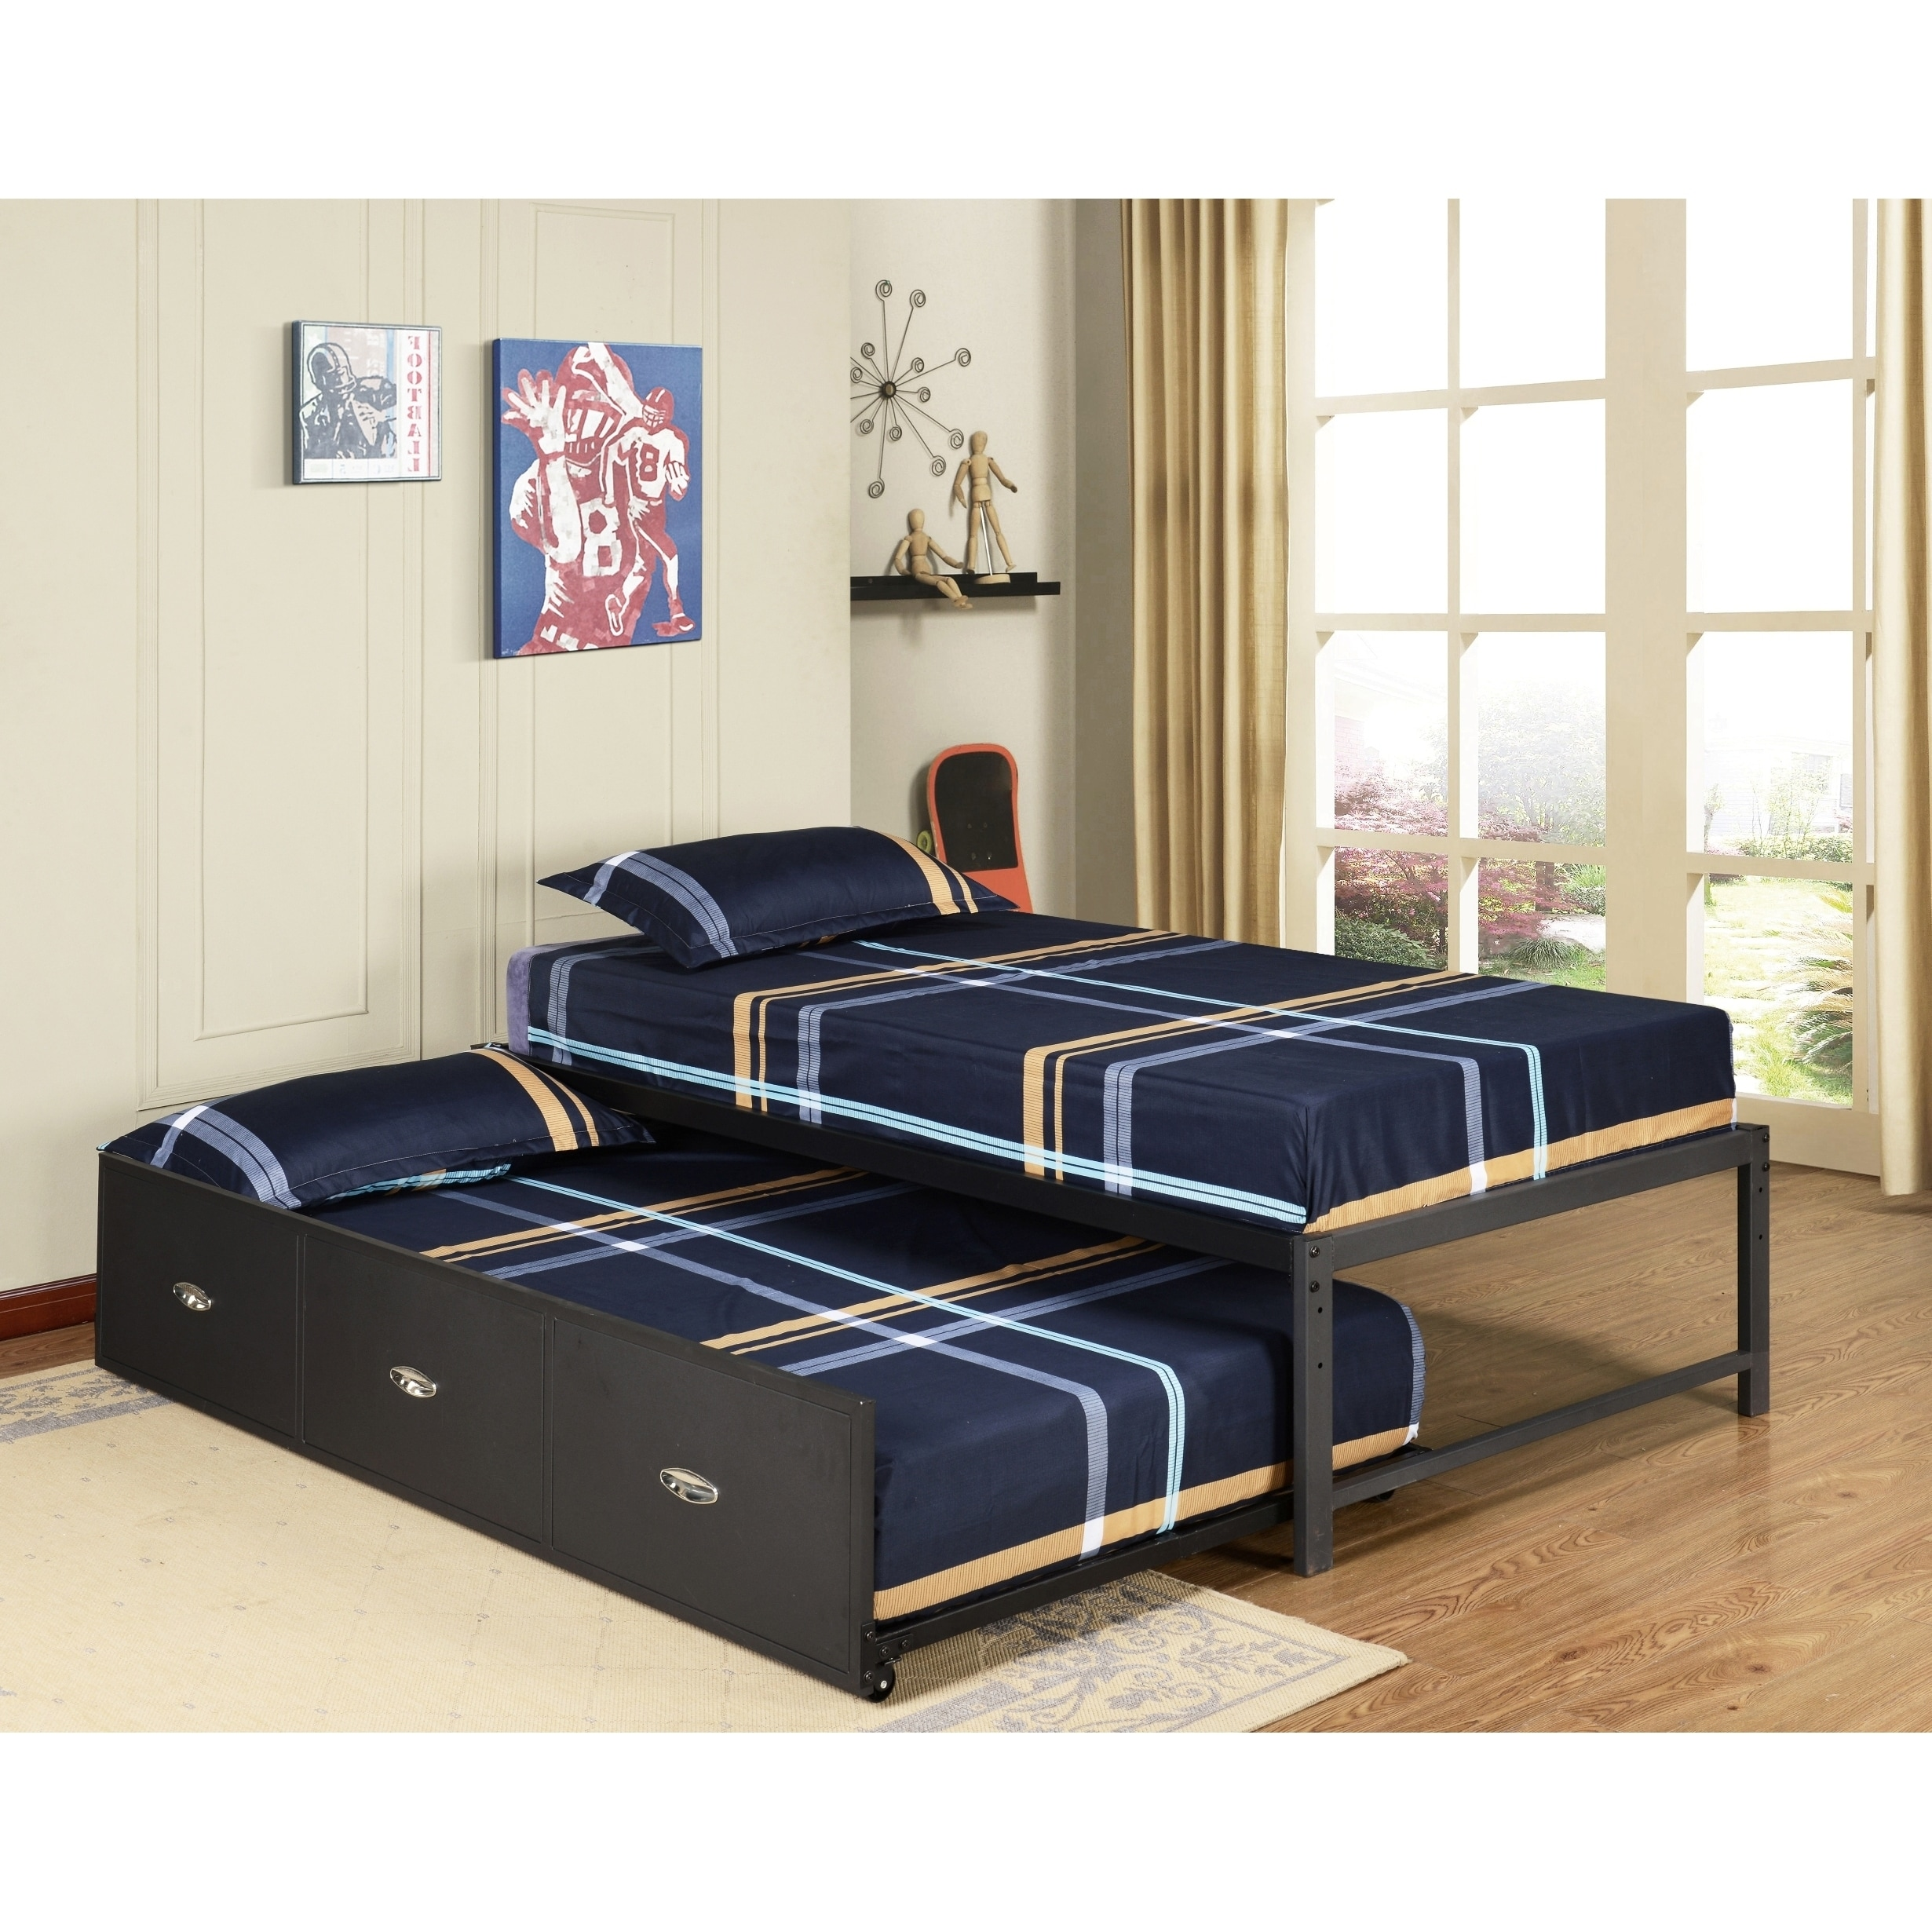 Shop K&B B39/124 Metal Twin-size Day Bed Frame with Trundle Bed ...